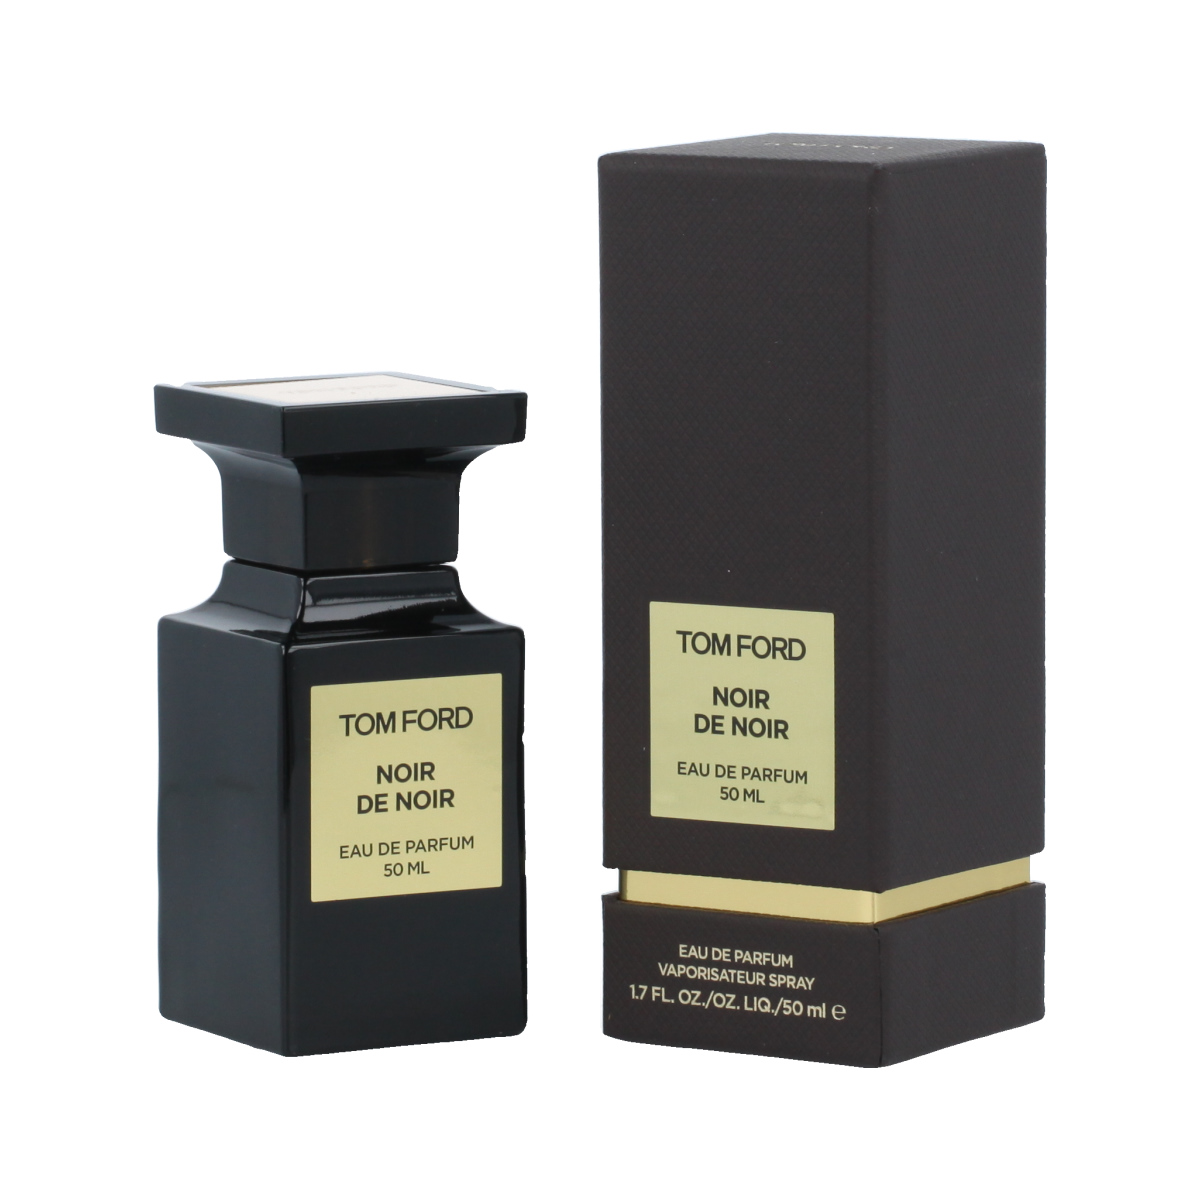 Tom Ford Noir de Noir EDP 50 ml UNISEX